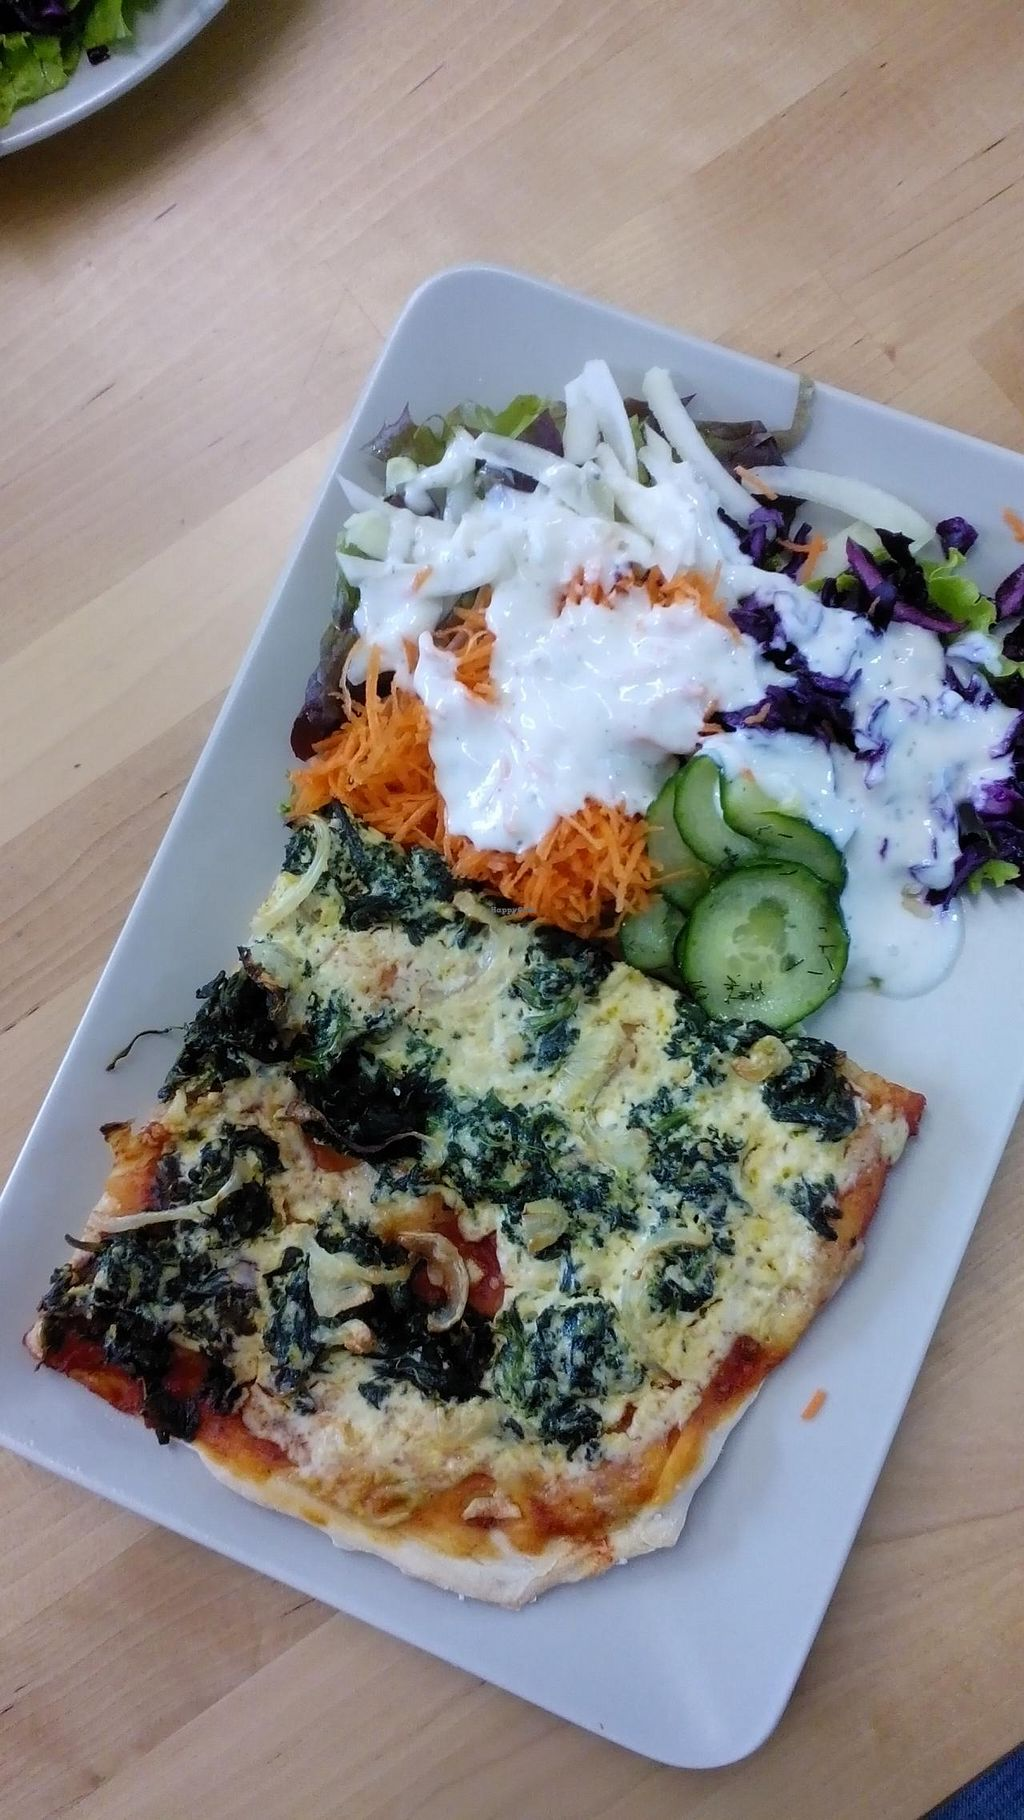 """Photo of CLOSED: Immergruen Bistro and Cafe  by <a href=""""/members/profile/Yilla"""">Yilla</a> <br/>Pizza with salad  <br/> May 18, 2015  - <a href='/contact/abuse/image/38251/102643'>Report</a>"""